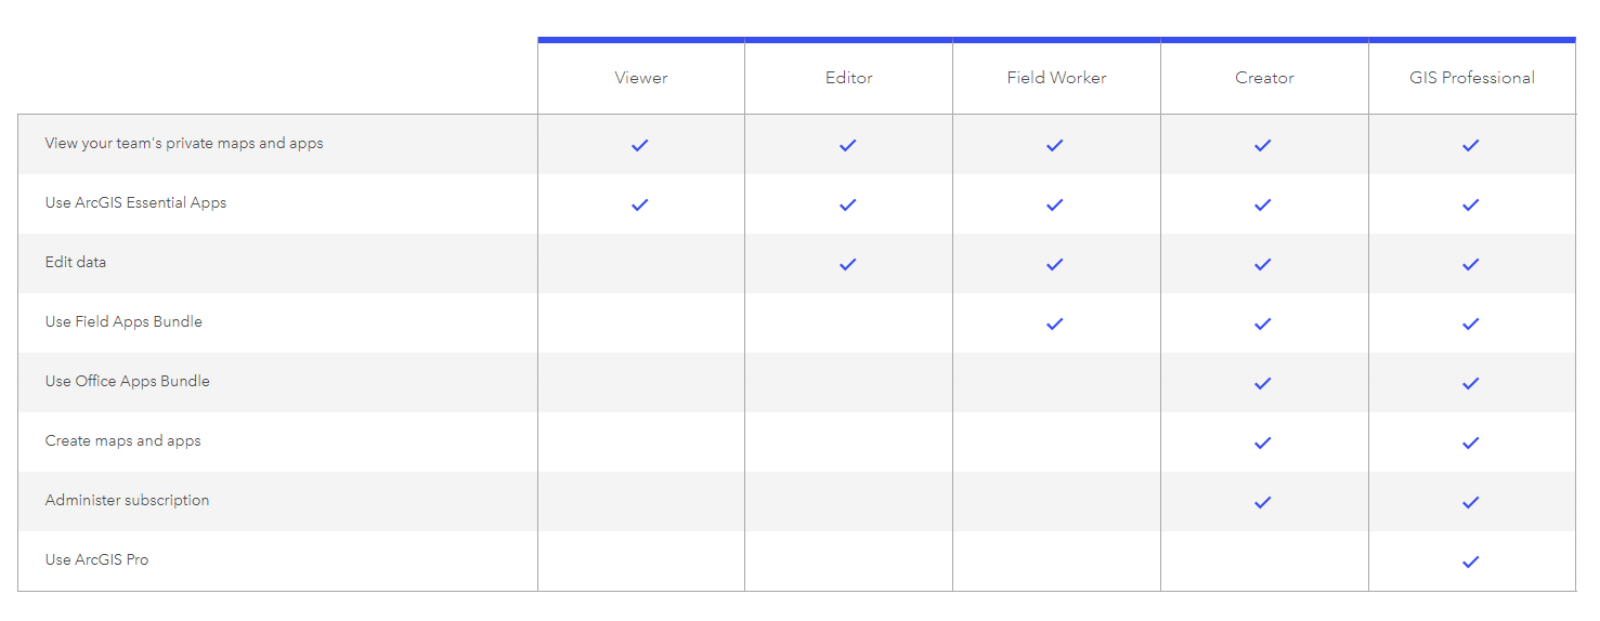 Here is a graphic, courtesy of Esri, displaying the comparison of the new ArcGIS User Types.